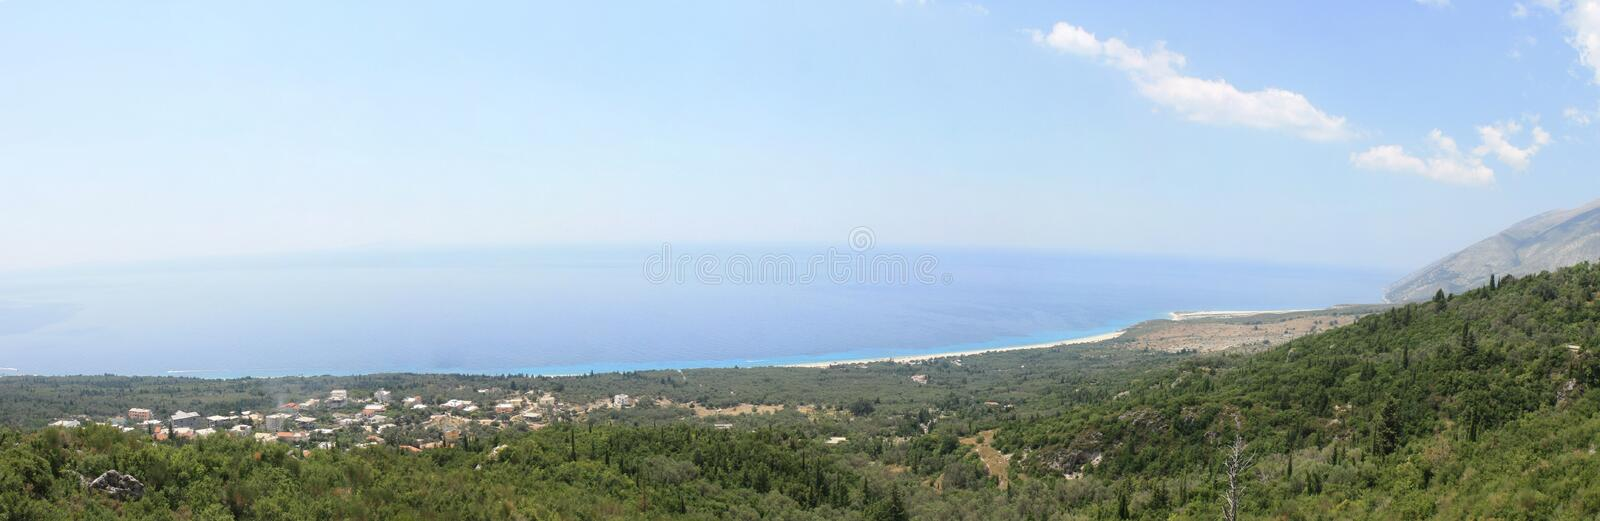 Download Albanian Coast Landscape stock photo. Image of panorama - 12527562